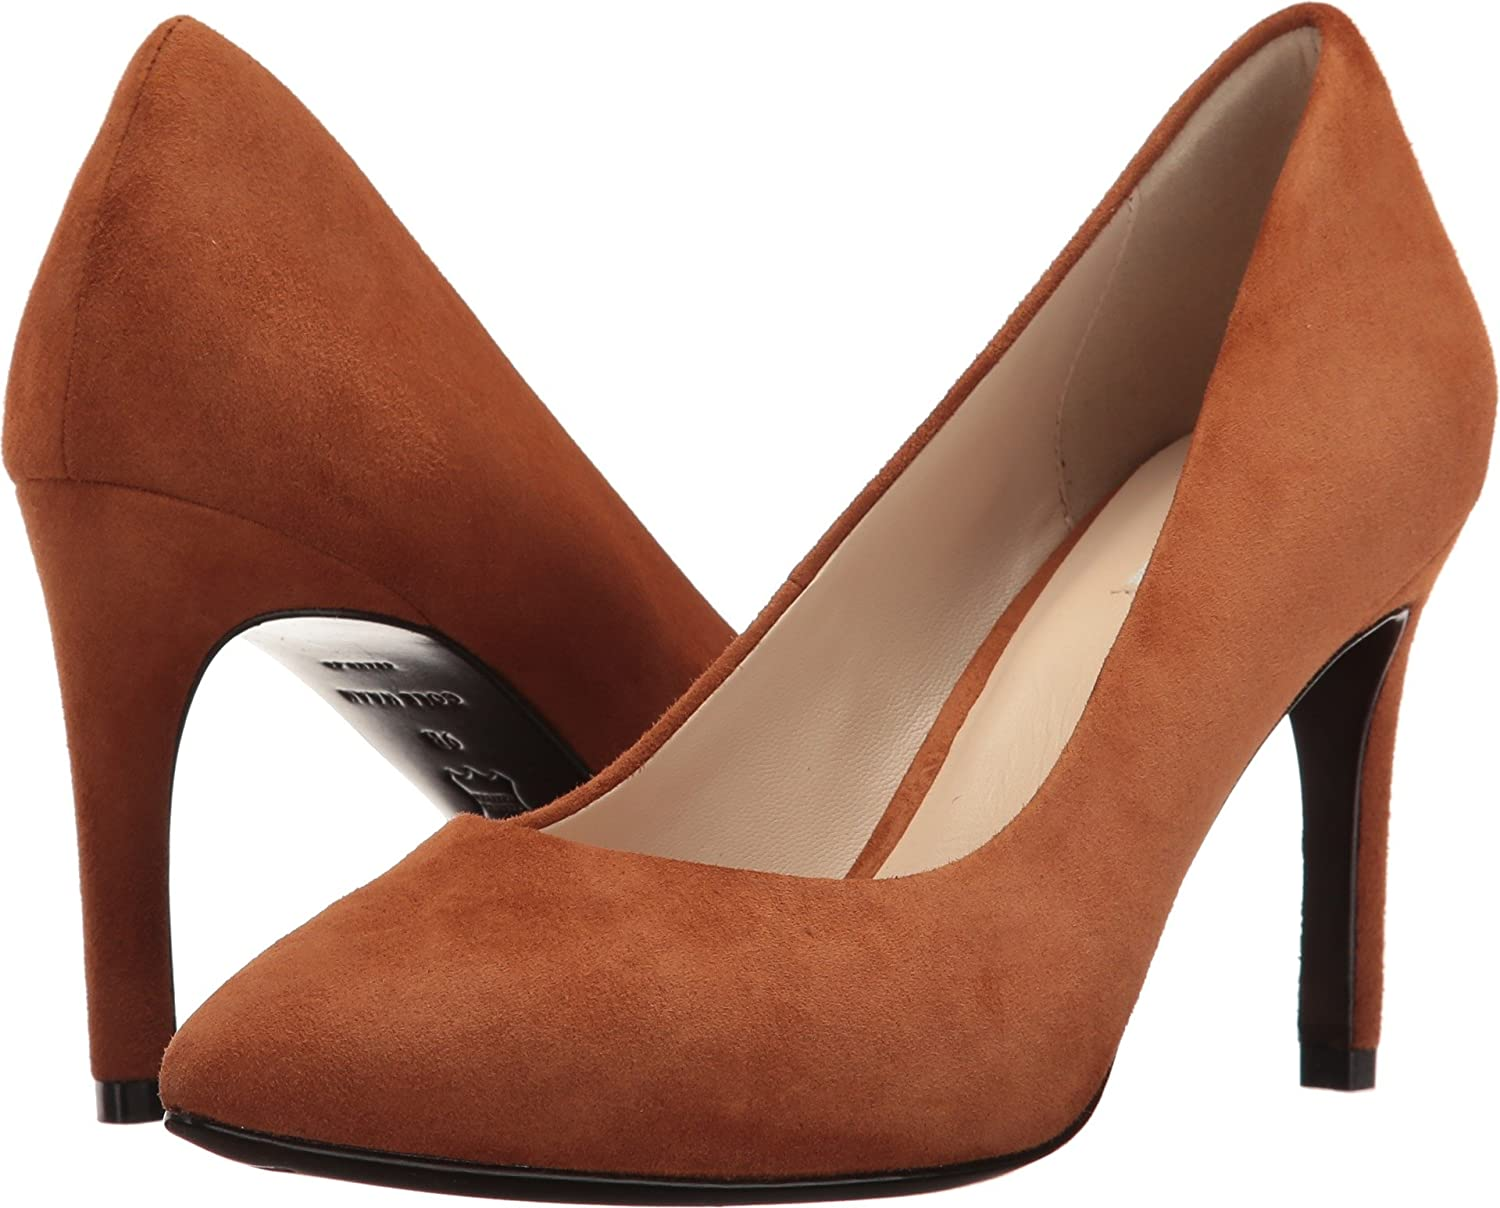 Cole Haan Womens Eliza Grand Pump 85mm B01M640M1M 10.5 B(M) US|British Tan Suede